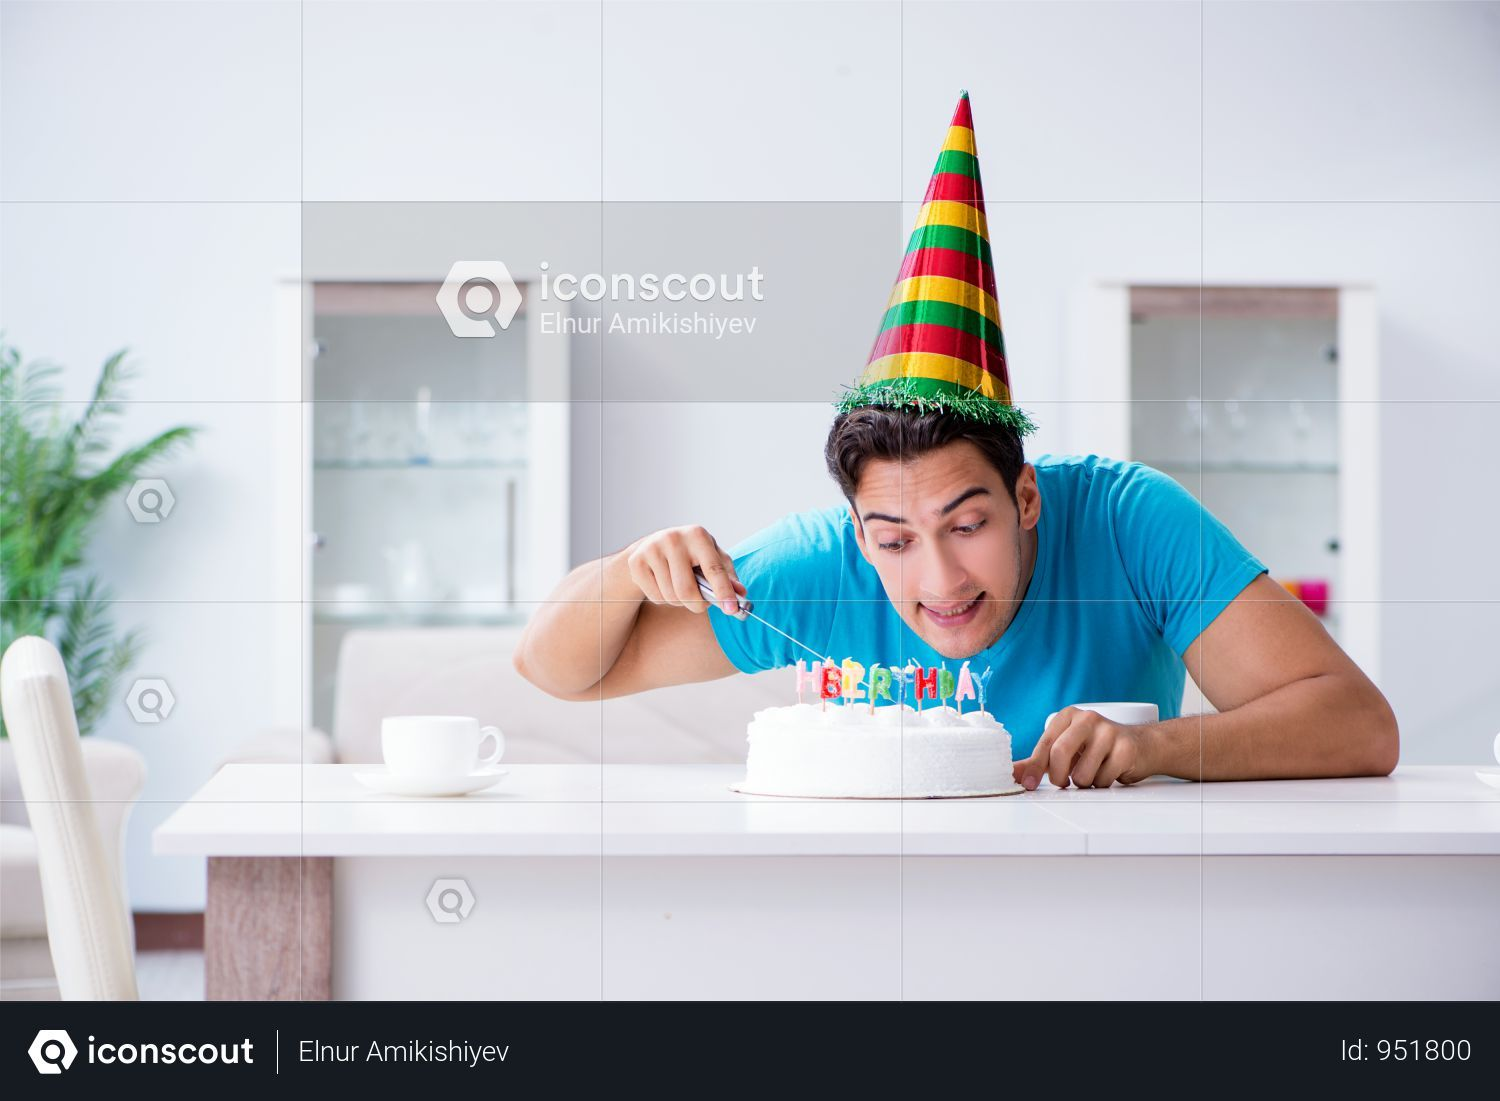 Premium Young Man Celebrating Birthday Alone At Home Photo Download In Png Jpg Format Home Photo Home Alone Birthday